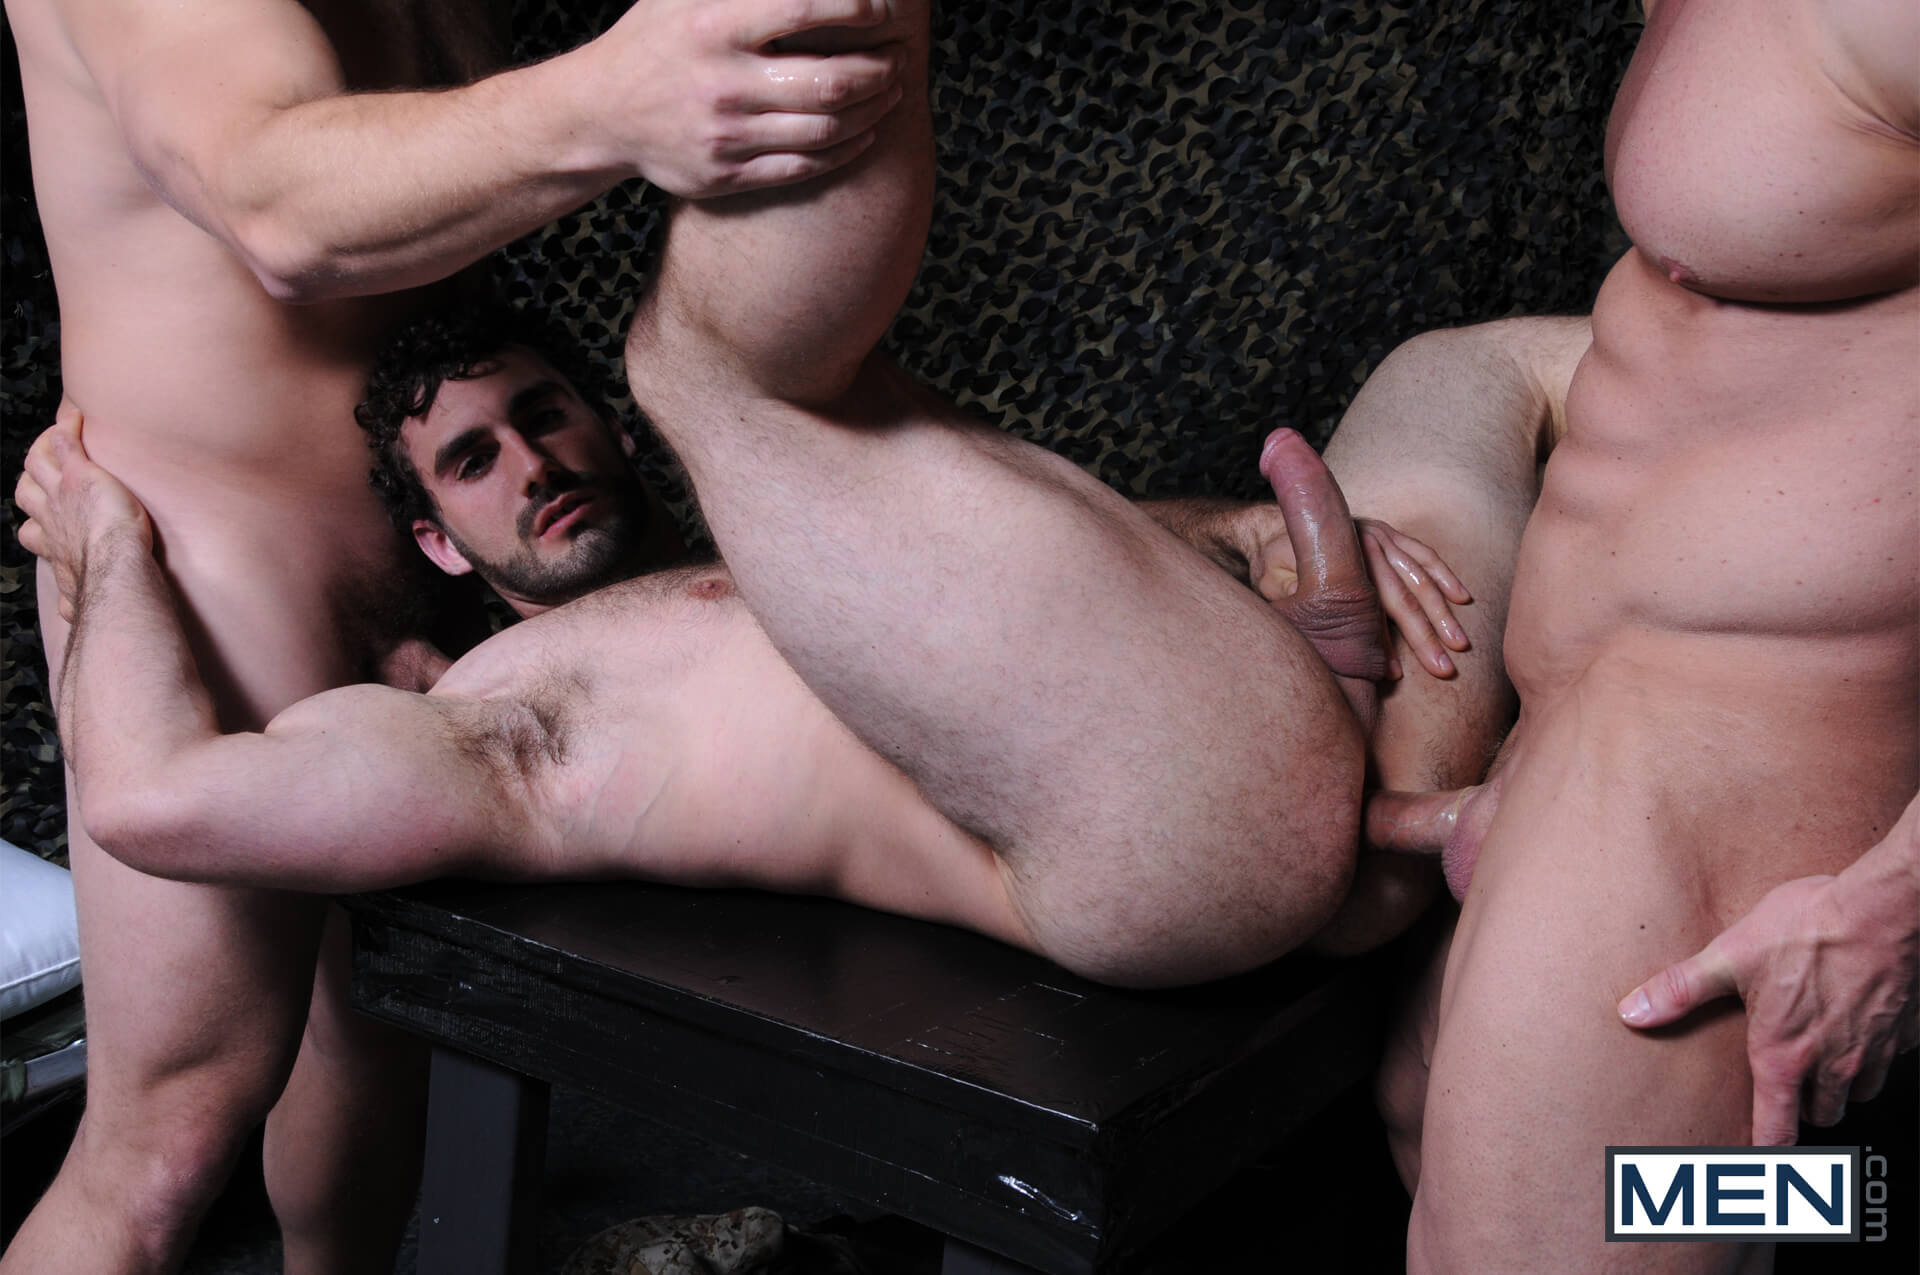 men drill my hole tour of duty part 3 colby jansen jaxton wheeler zeb atlas gay porn blog image 12